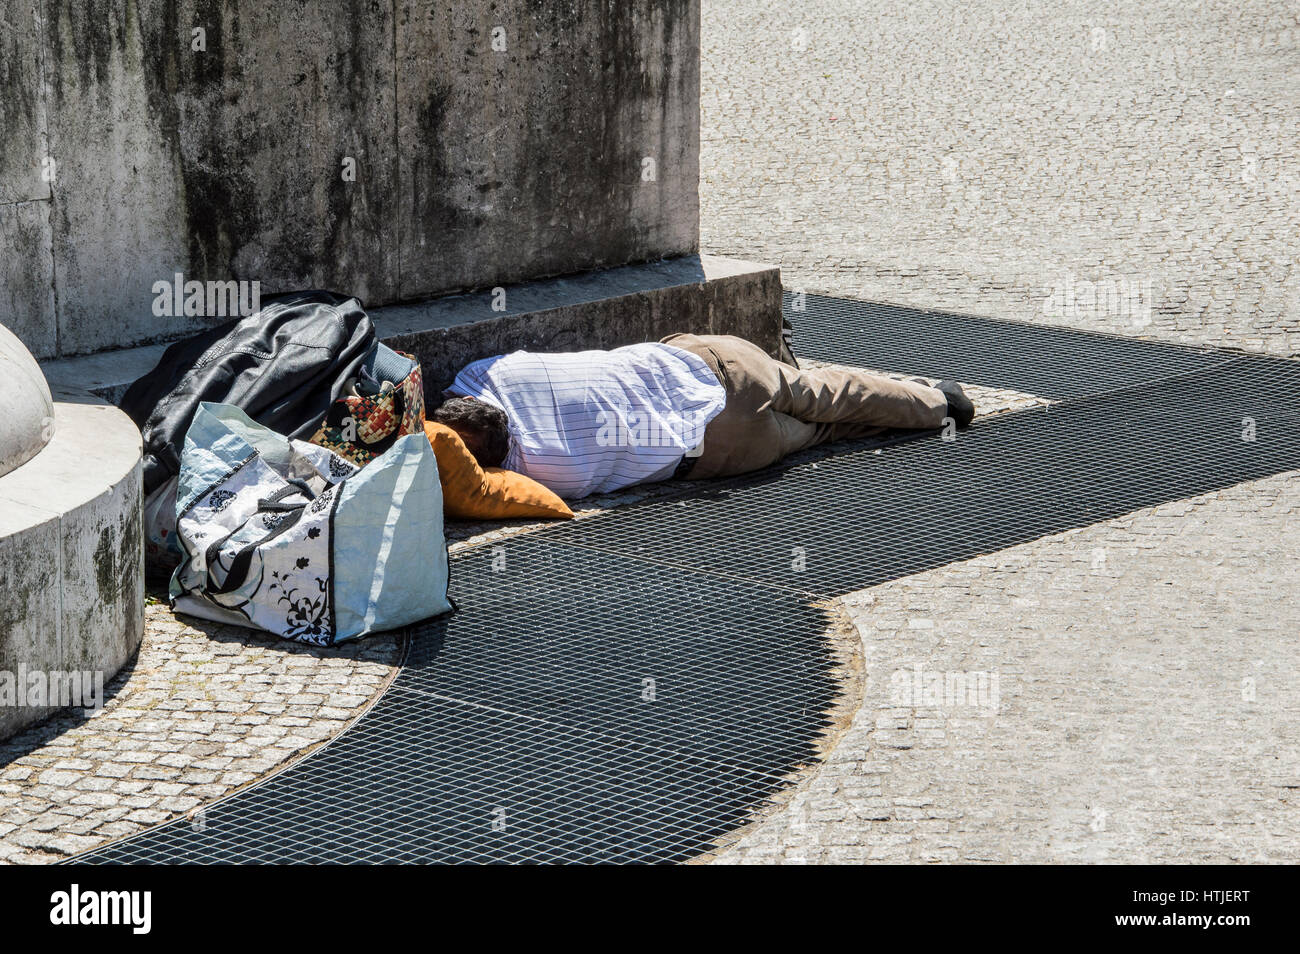 Fired businessman, unemployment sleeping on the street in waiting for a job - Stock Image